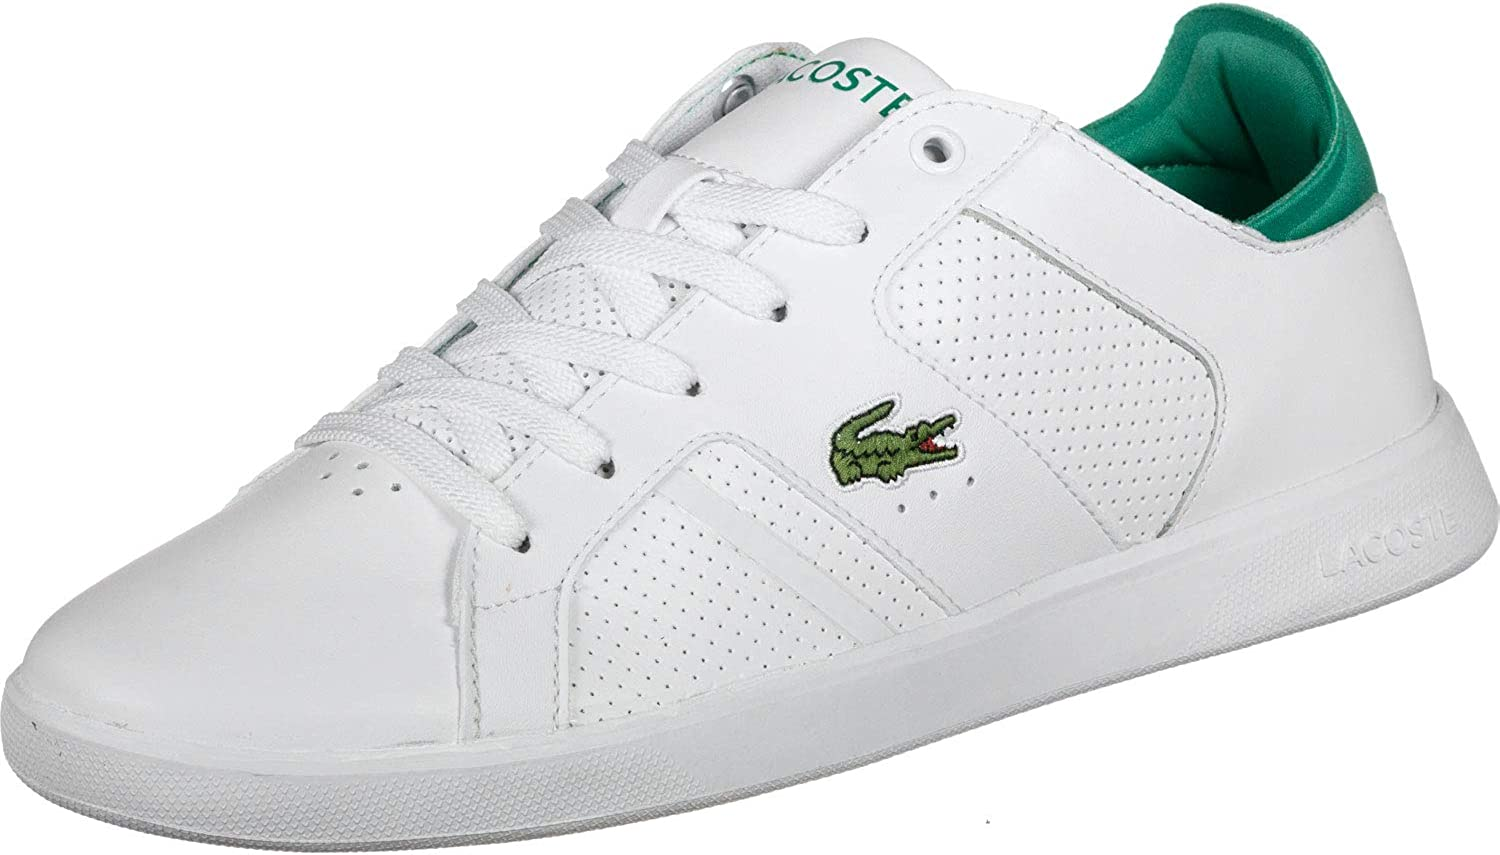 Lacoste Men's Novas 219 1 SMA Leather Trainers, White